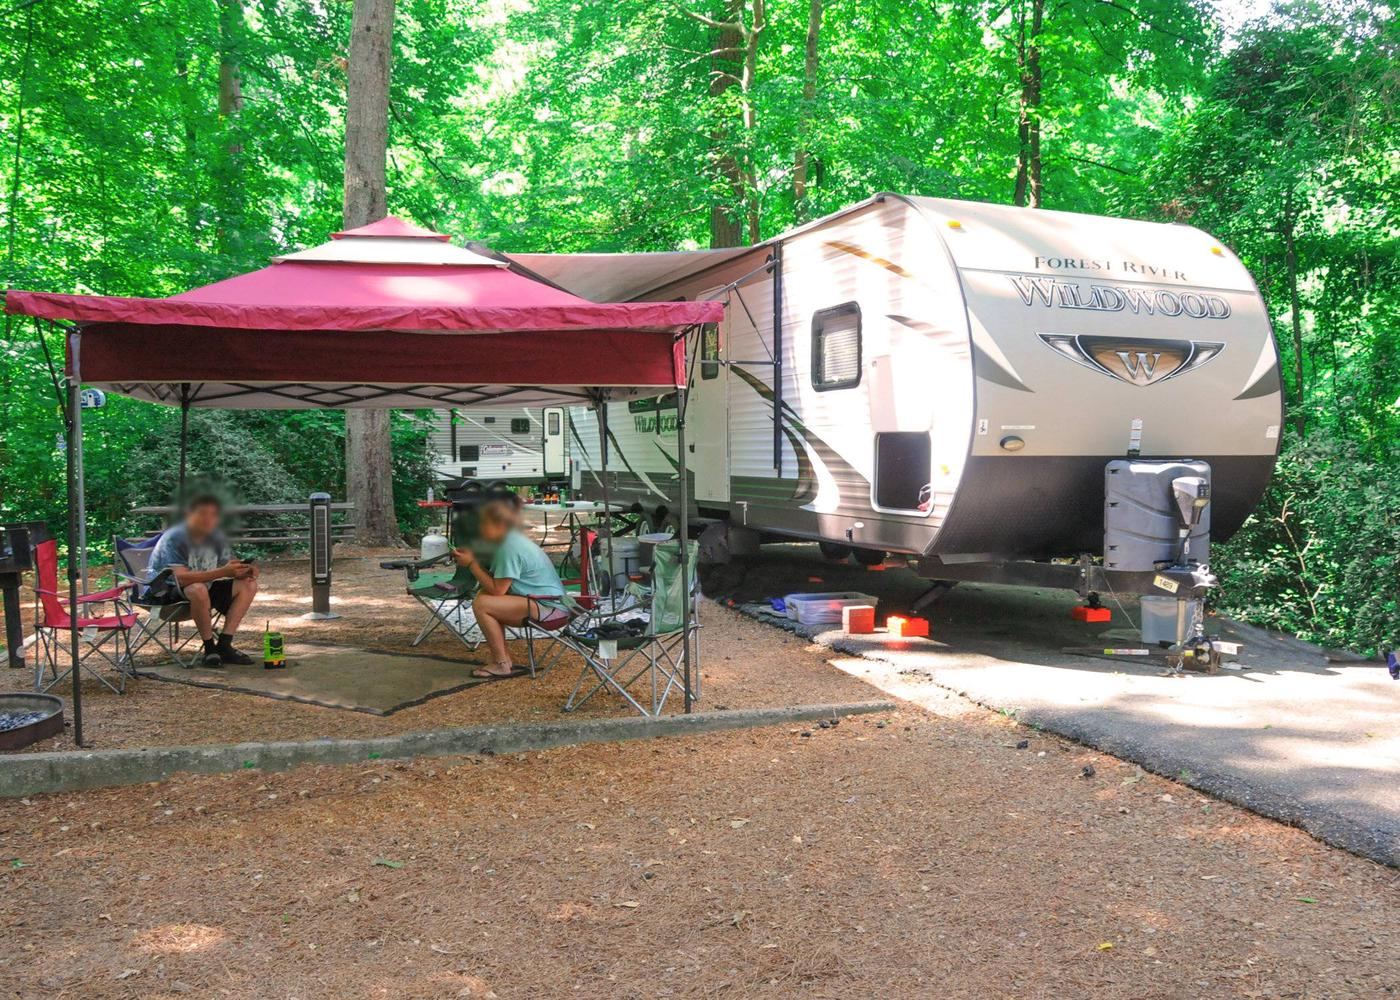 Awning-side clearance, campsite view.Victoria Campground, campsite 68.